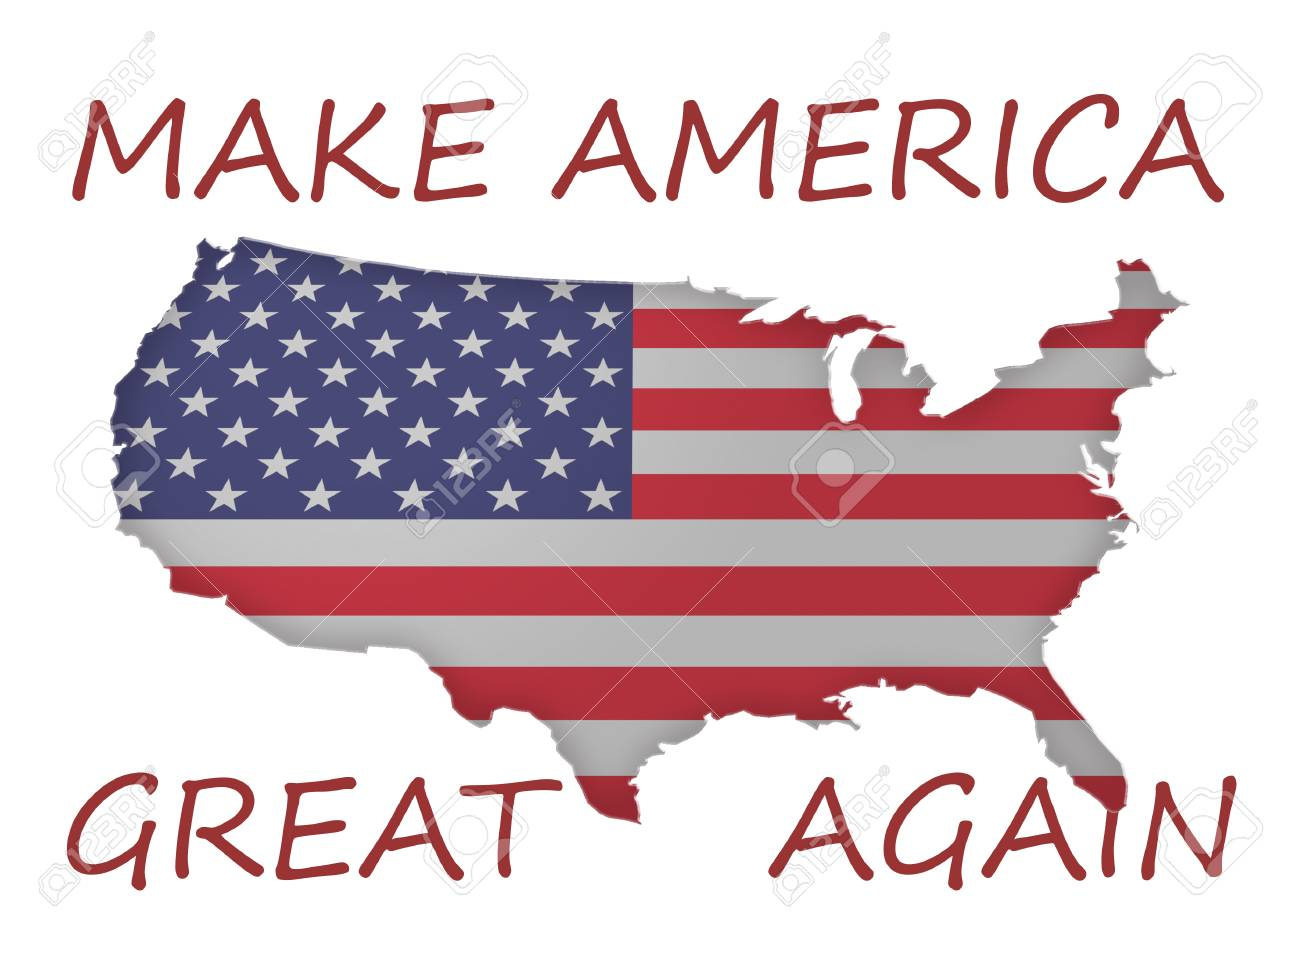 3d stars and stripes flag us map with political slogan make america great again 3d